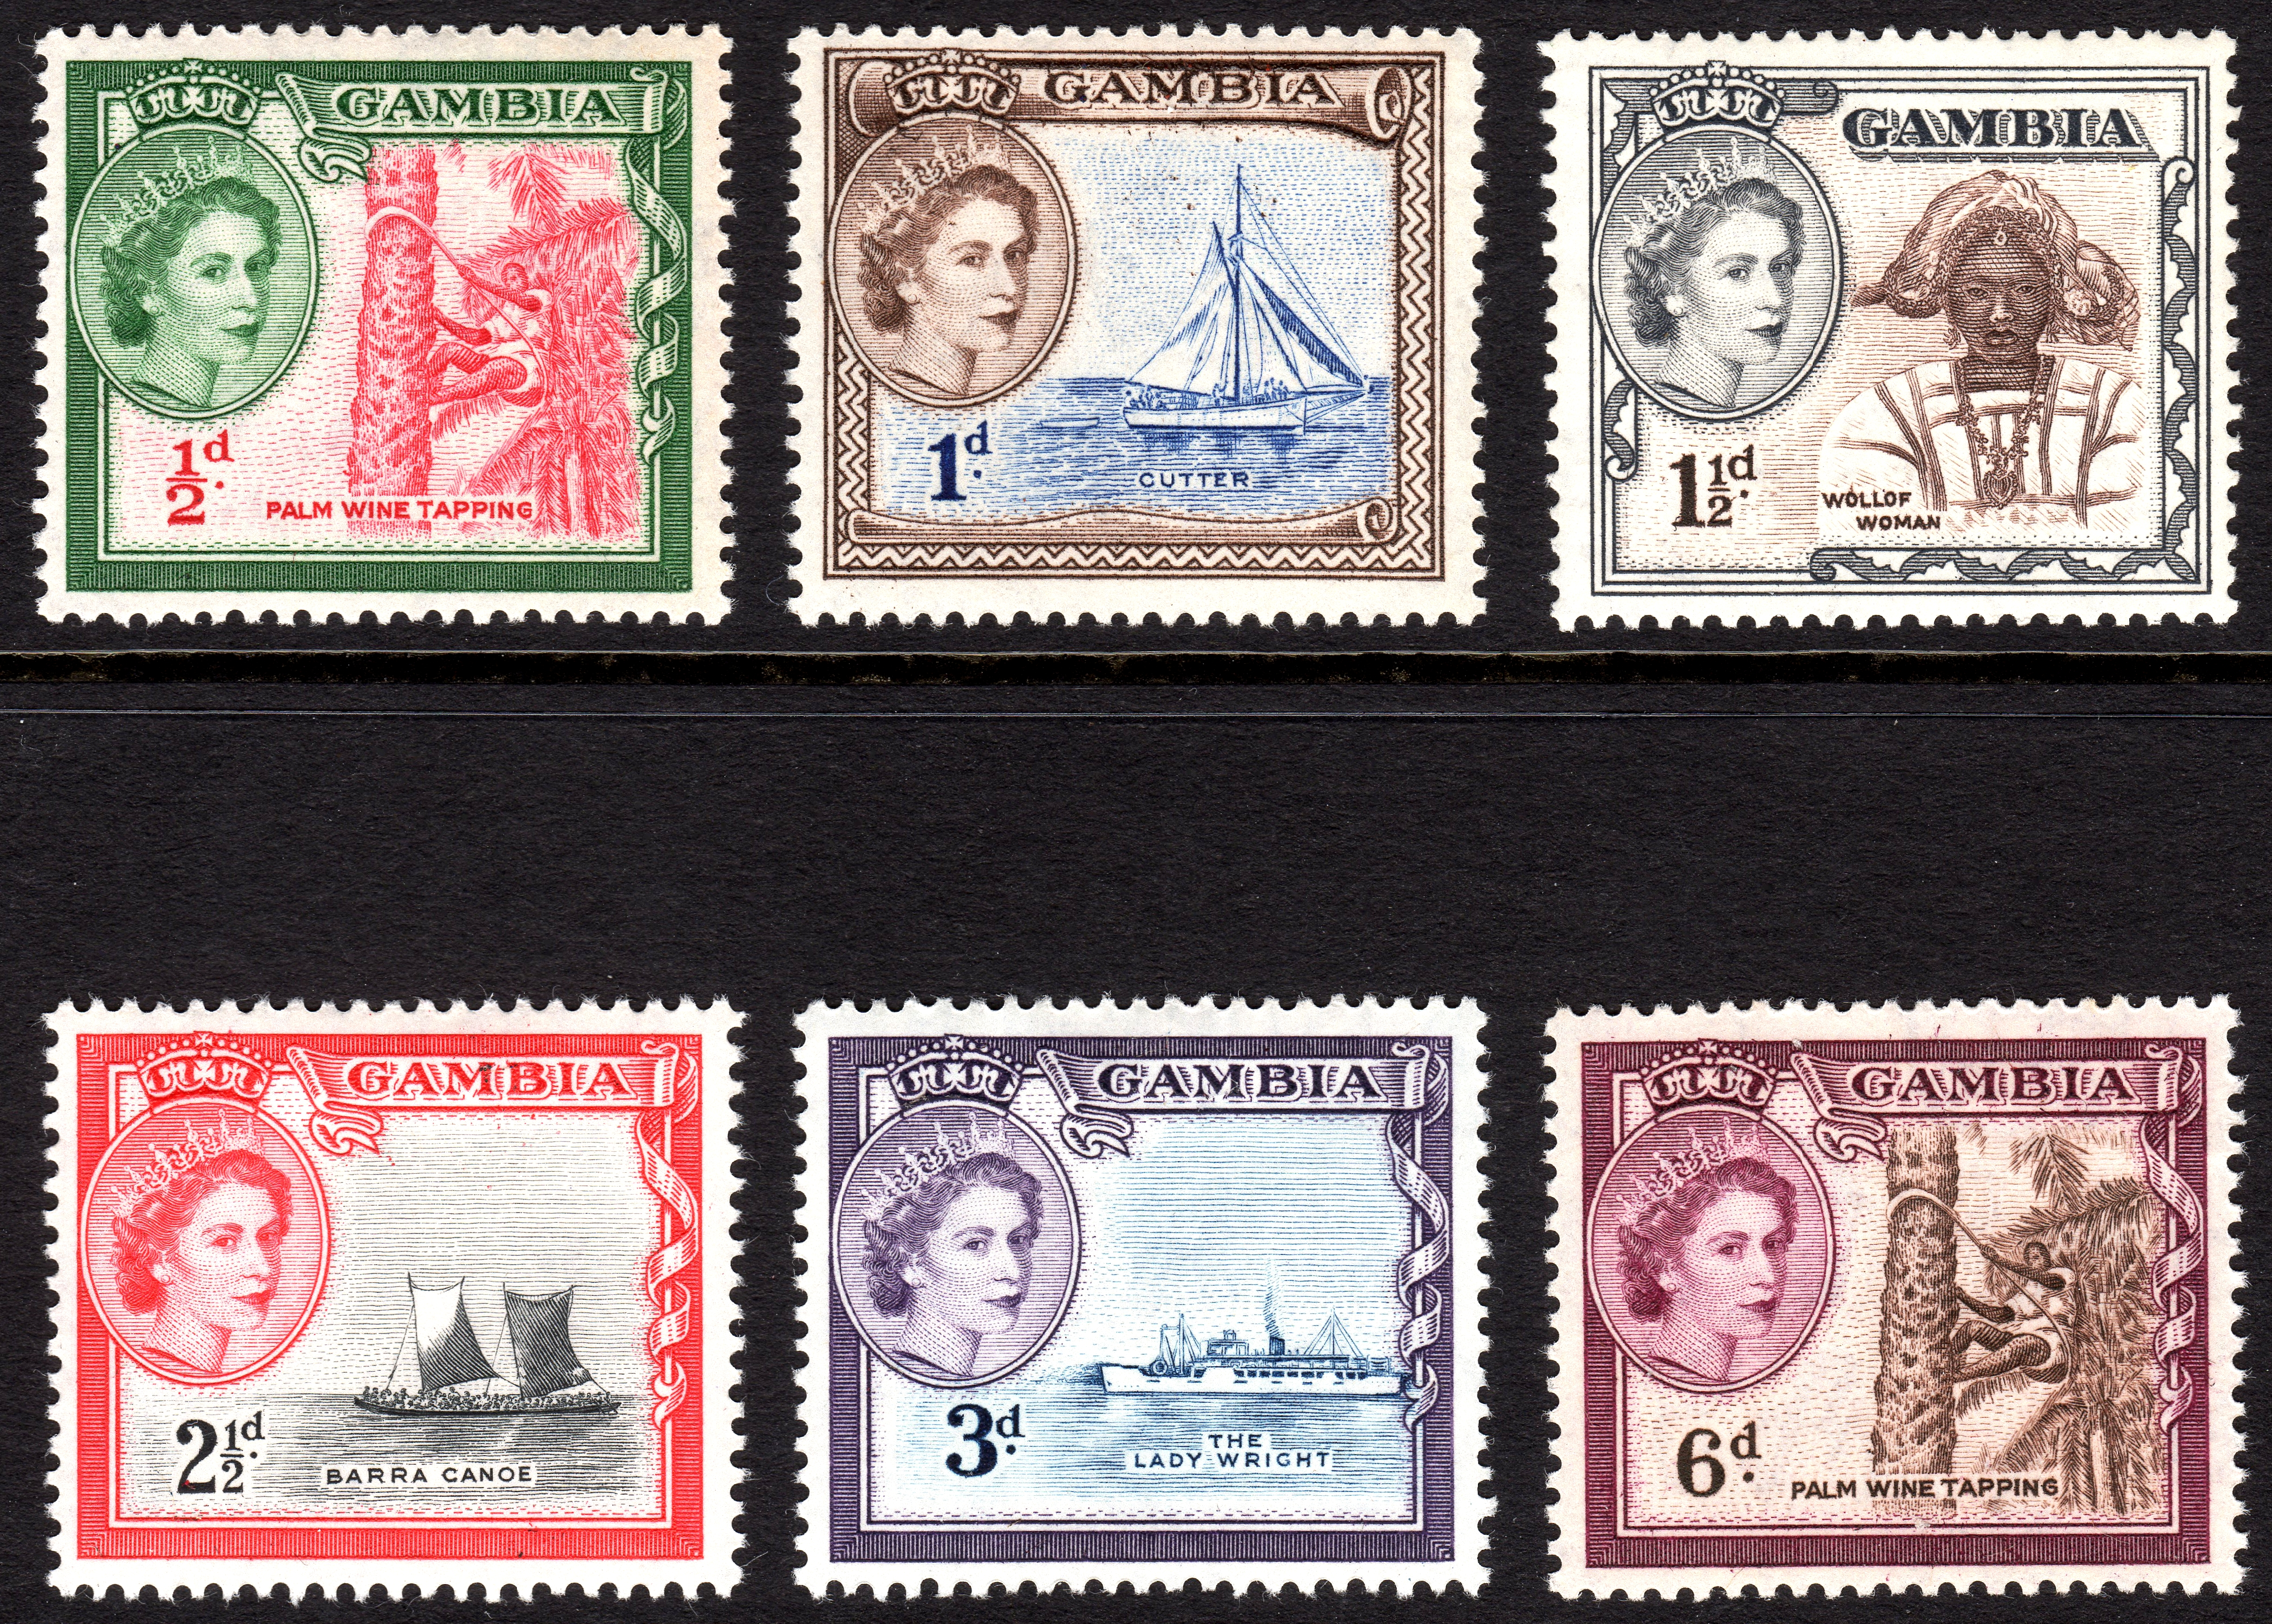 Gambia 1953 stamps